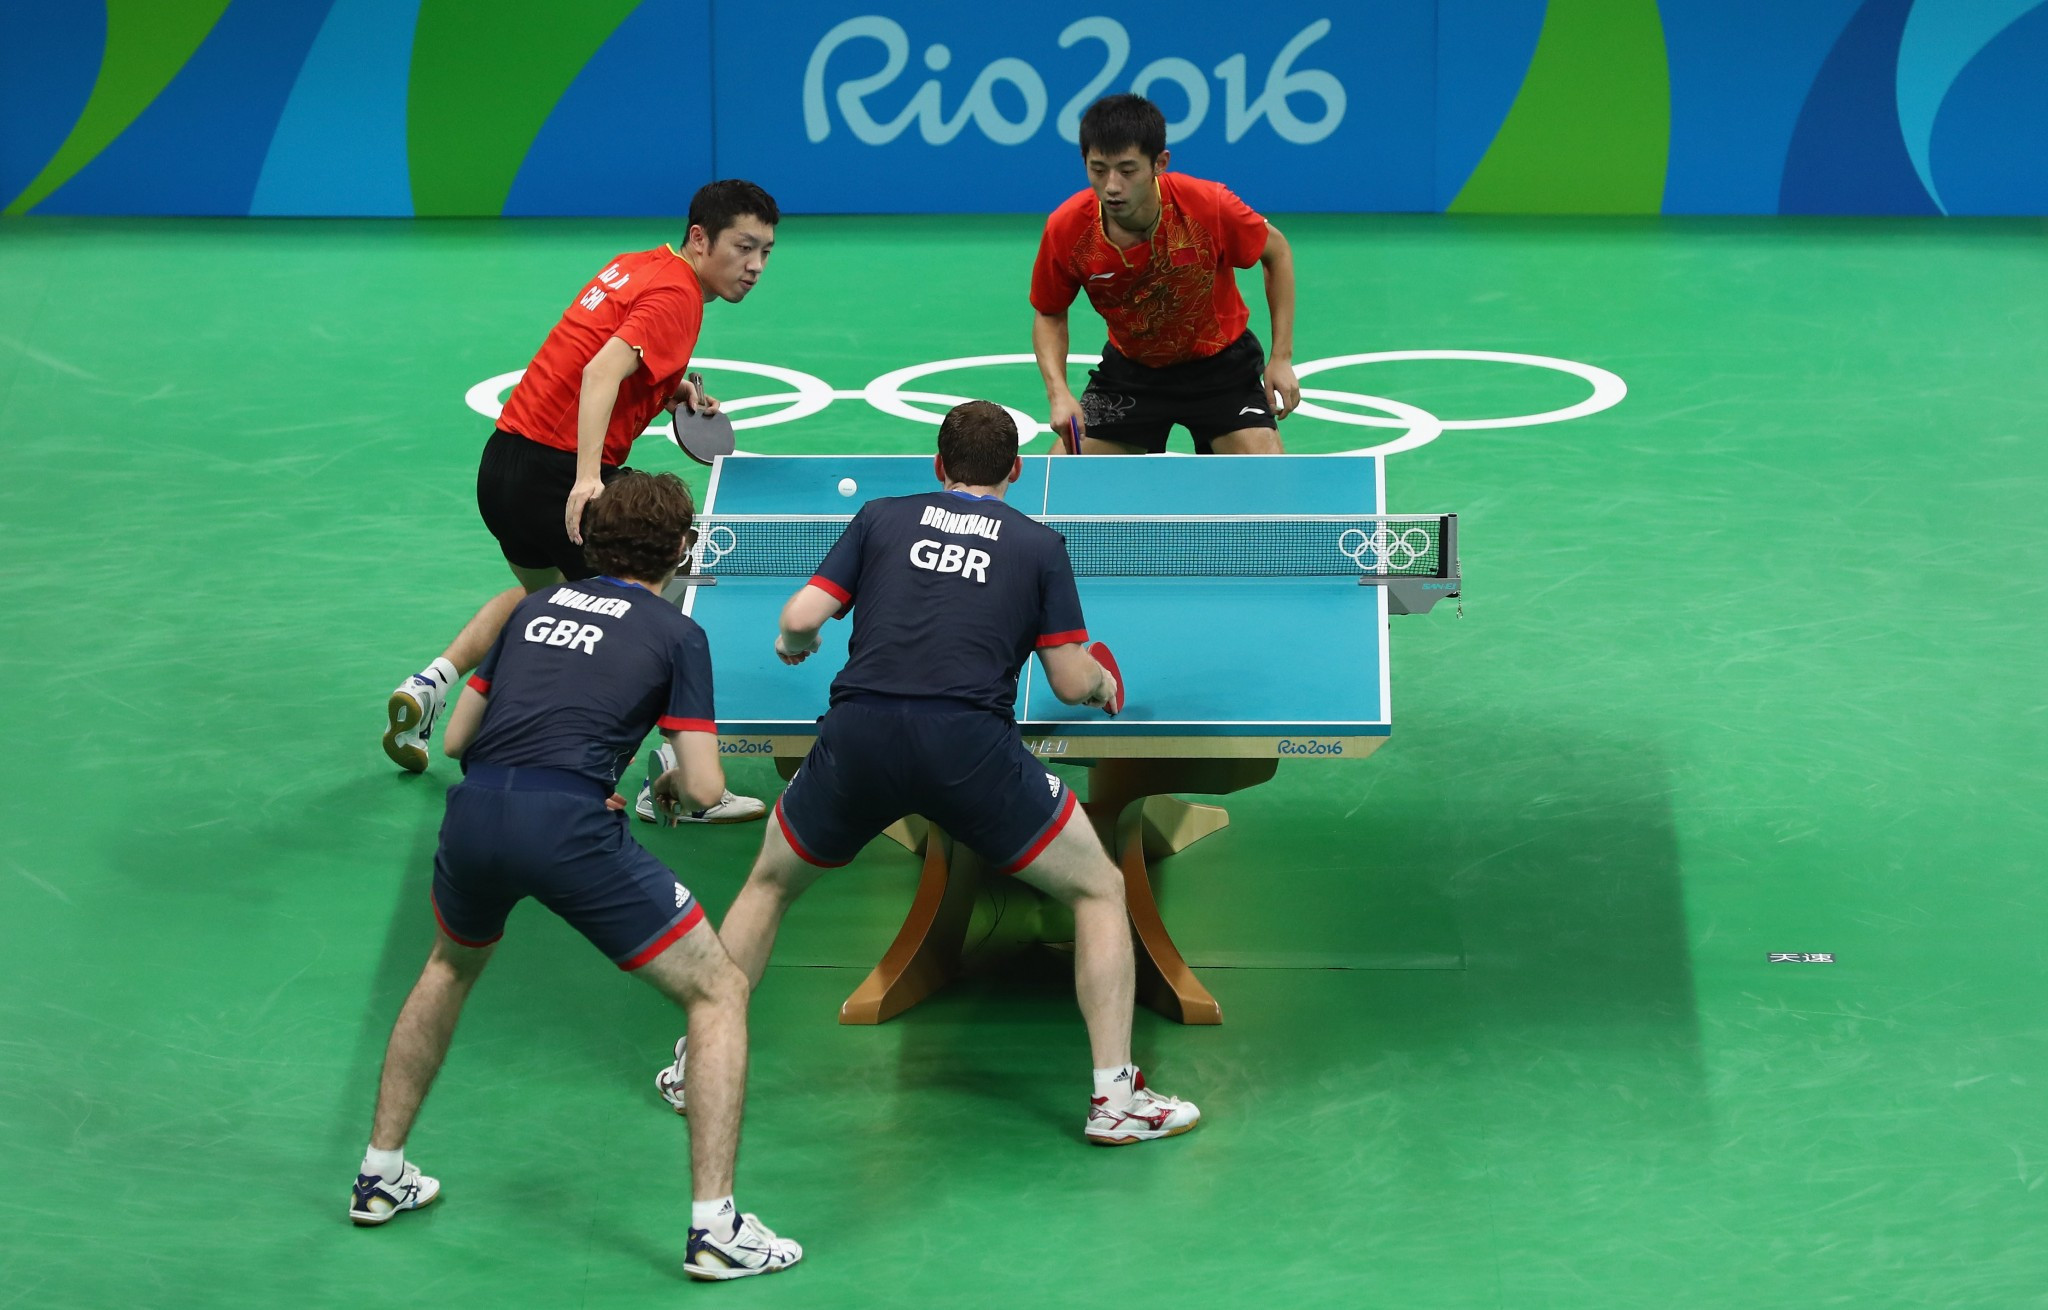 The initial decision not to pass the governance reforms sparked fears about the future of table tennis in England ©Getty Images